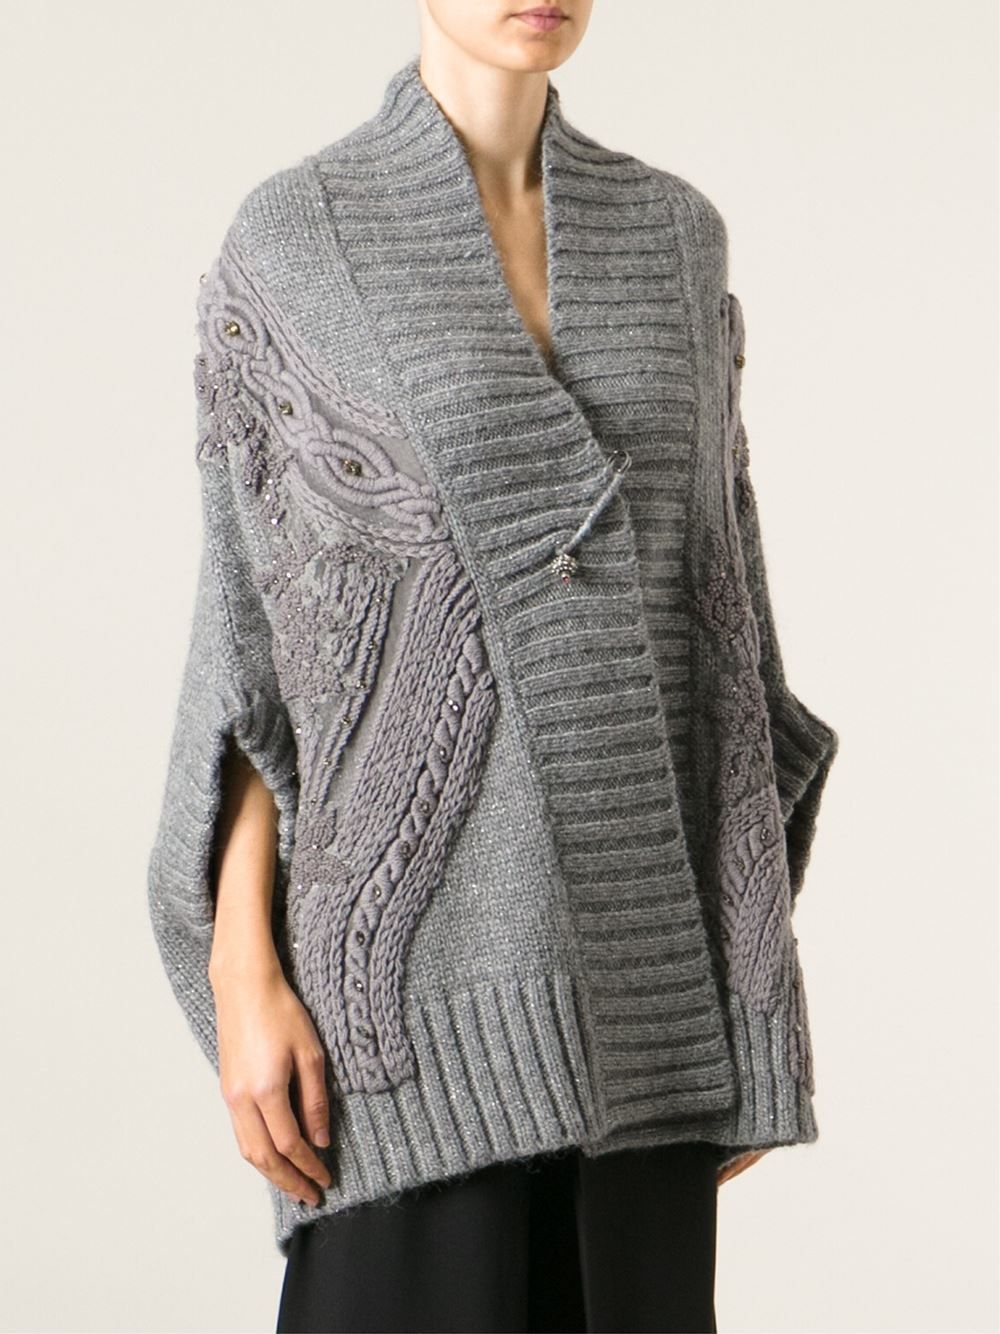 KNITWEAR - Cardigans Antonio Marras Store For Sale Discount Genuine Discount In China Manchester Great Sale JR3Lt2